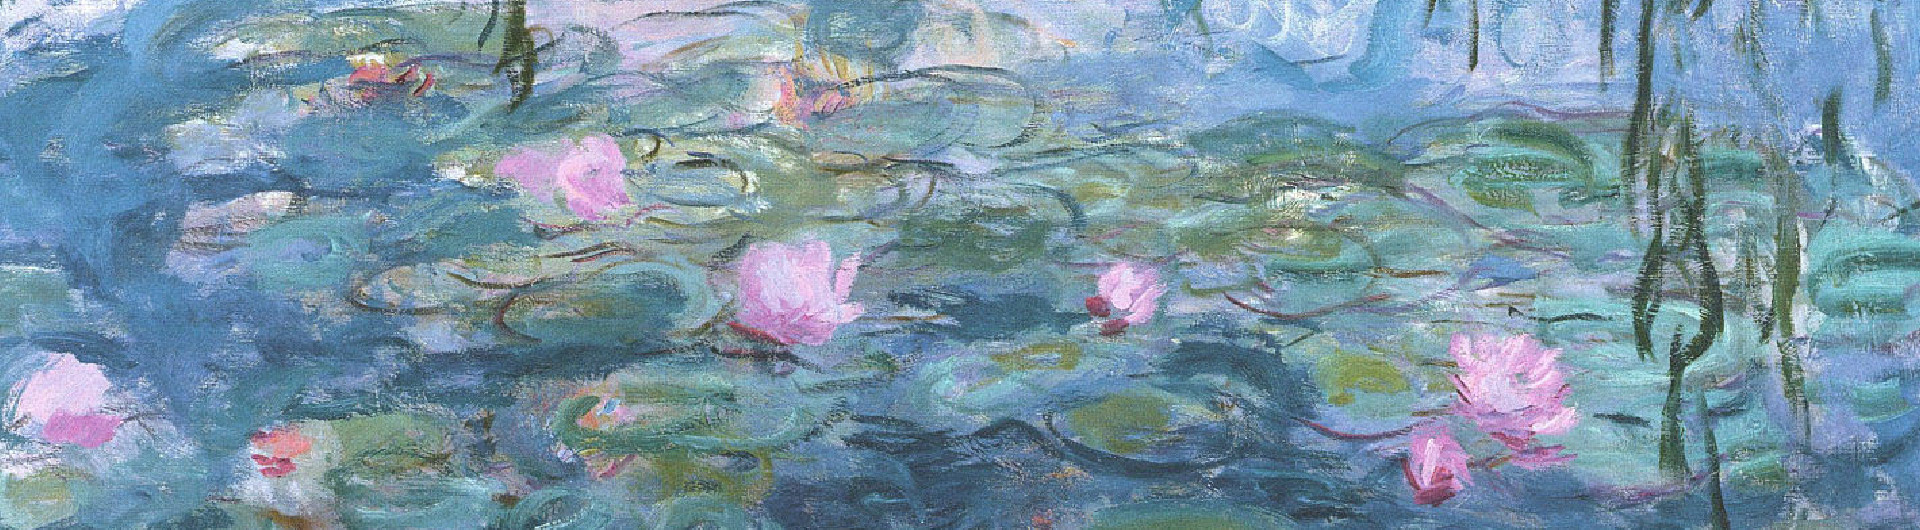 Interior inspiration monets water lilies water lilies 1916 was painted in oil but because monet used such little paint and gentle brush strokes the piece has an effect more similar to izmirmasajfo